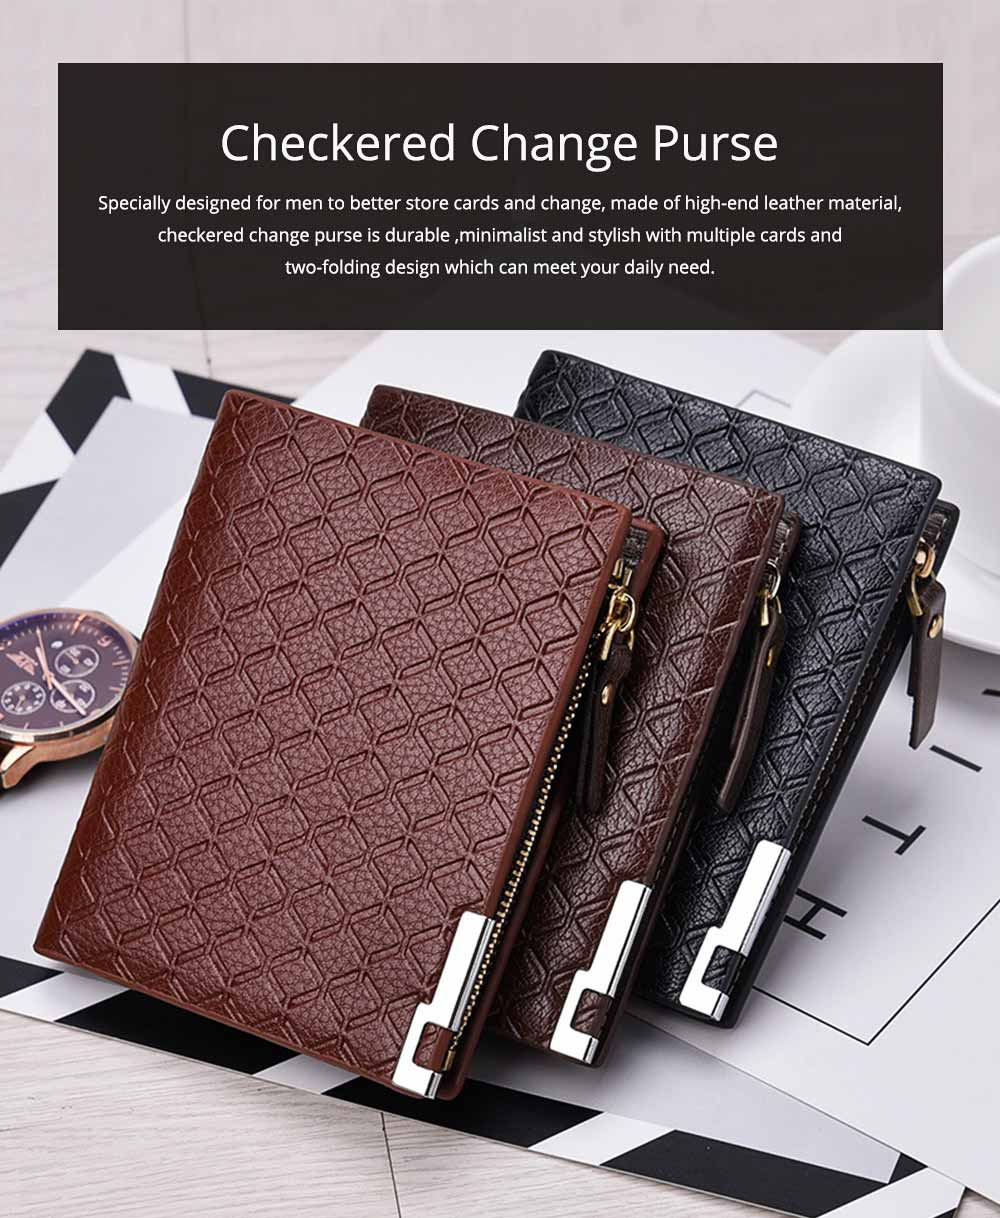 Checkered Change Purse with Two-folding & Multiple Cards Design, Business Genuine Leather Style for Men 0